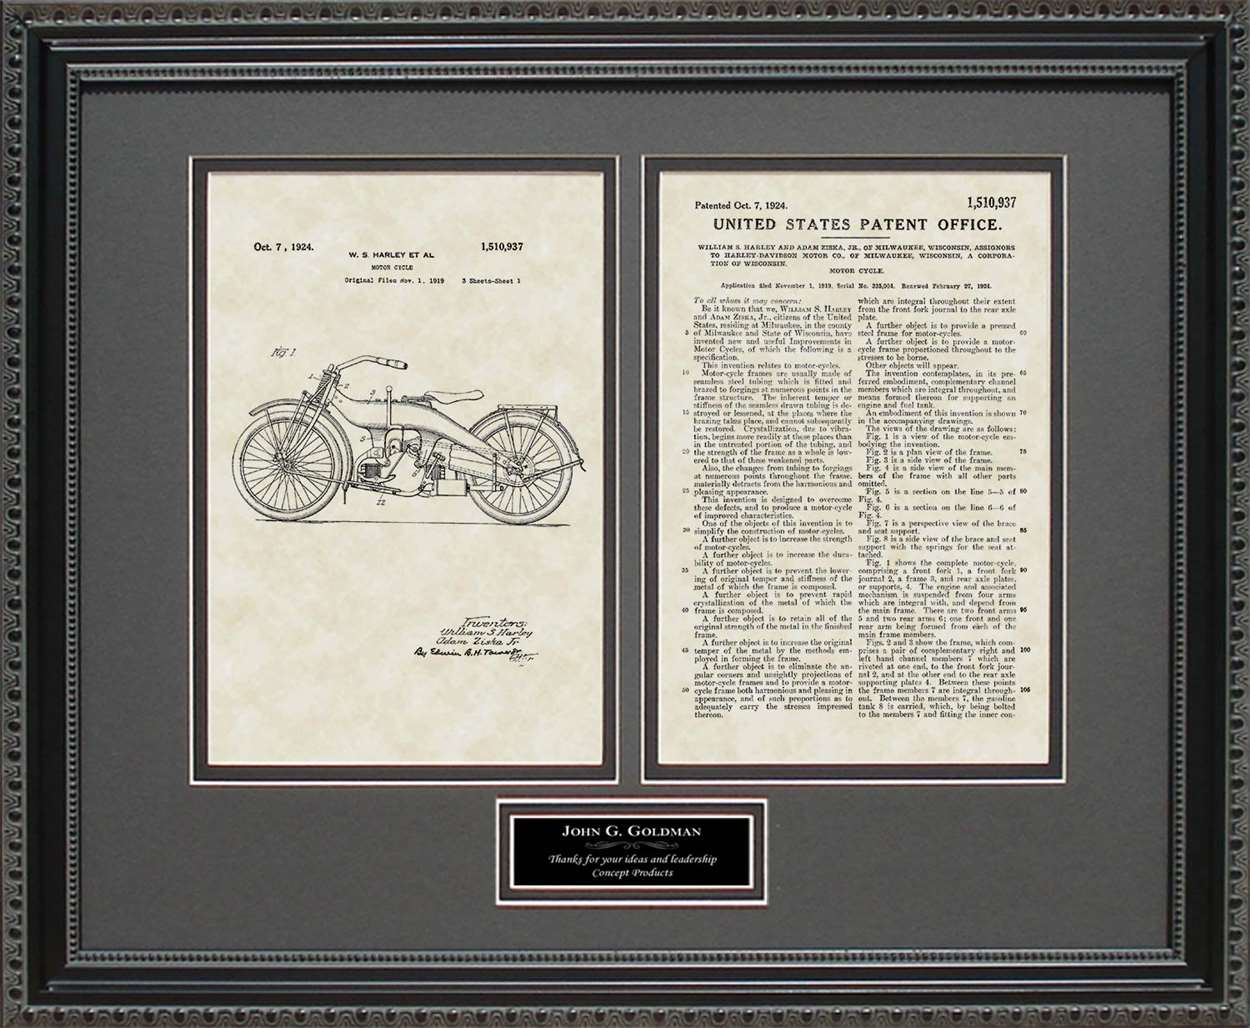 Personalized Motorcycle Patent, Art & Copy, Harley, 1924